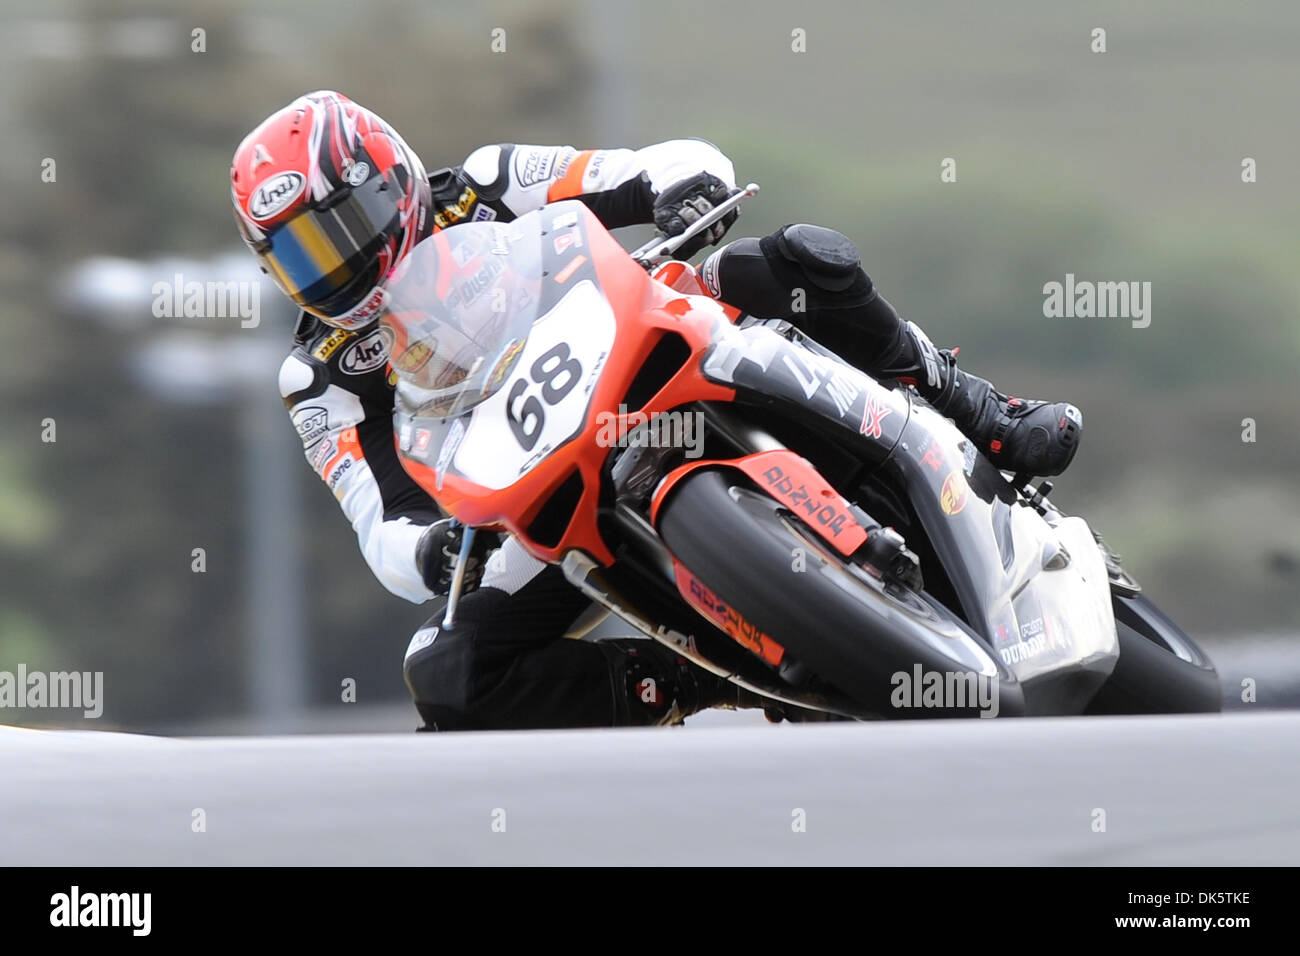 May 14, 2011 - Sonoma, California, United States of America - Dustin Dominguez (68) rides a Ducati 848 during AMA Pro SuperSport qualifying at the West Coast Moto Jam at Infineon Raceway. (Credit Image: © Matt Cohen/Southcreek Global/ZUMAPRESS.com) - Stock Image